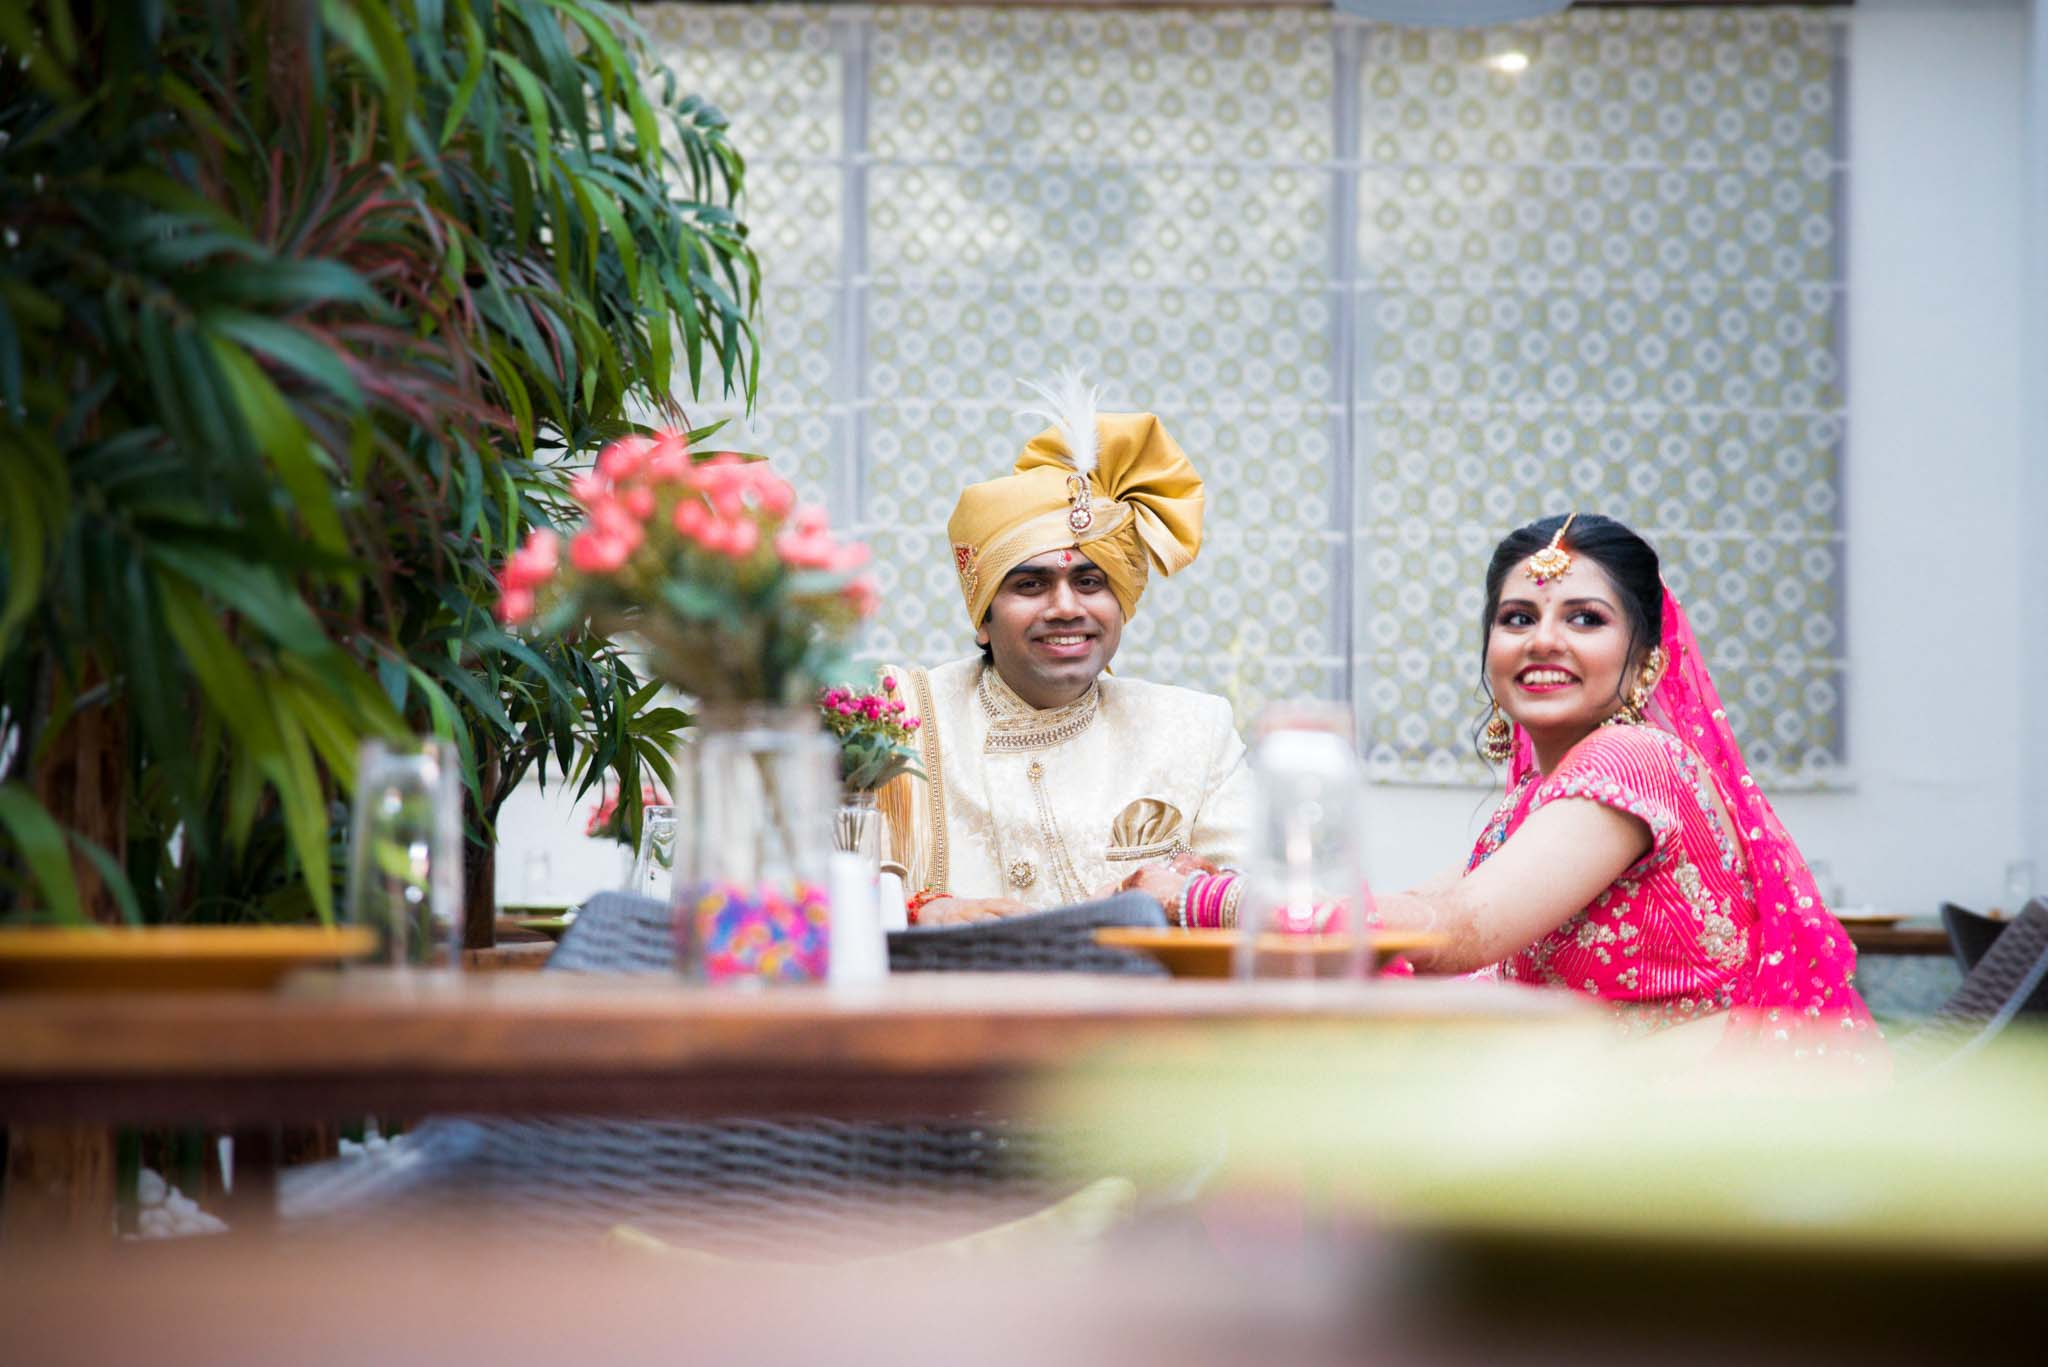 Candid-Wedding-Photography-Nagpur-Destination-92